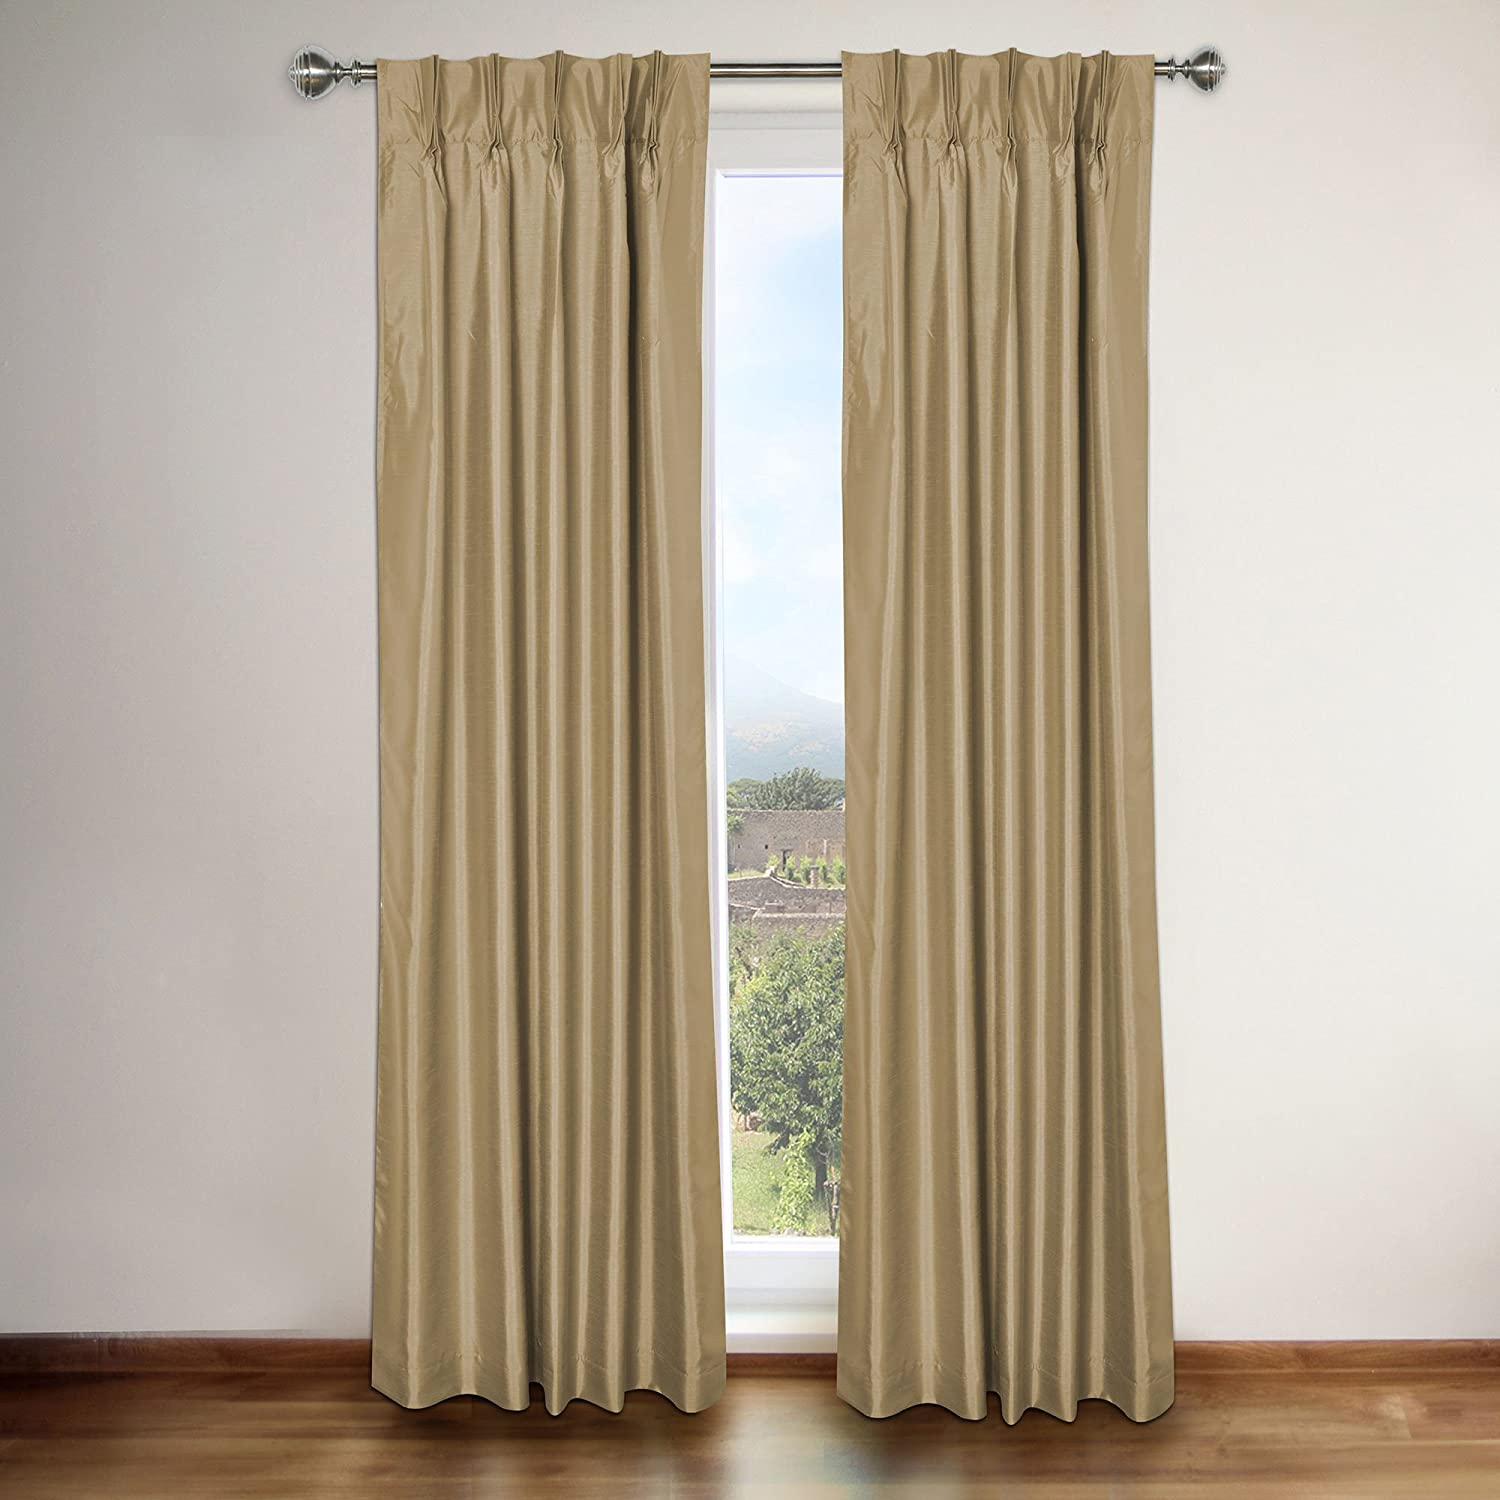 Famous Home Fashions Famous Home Elaine Taupe Window Curtain Panel 32' x 90'